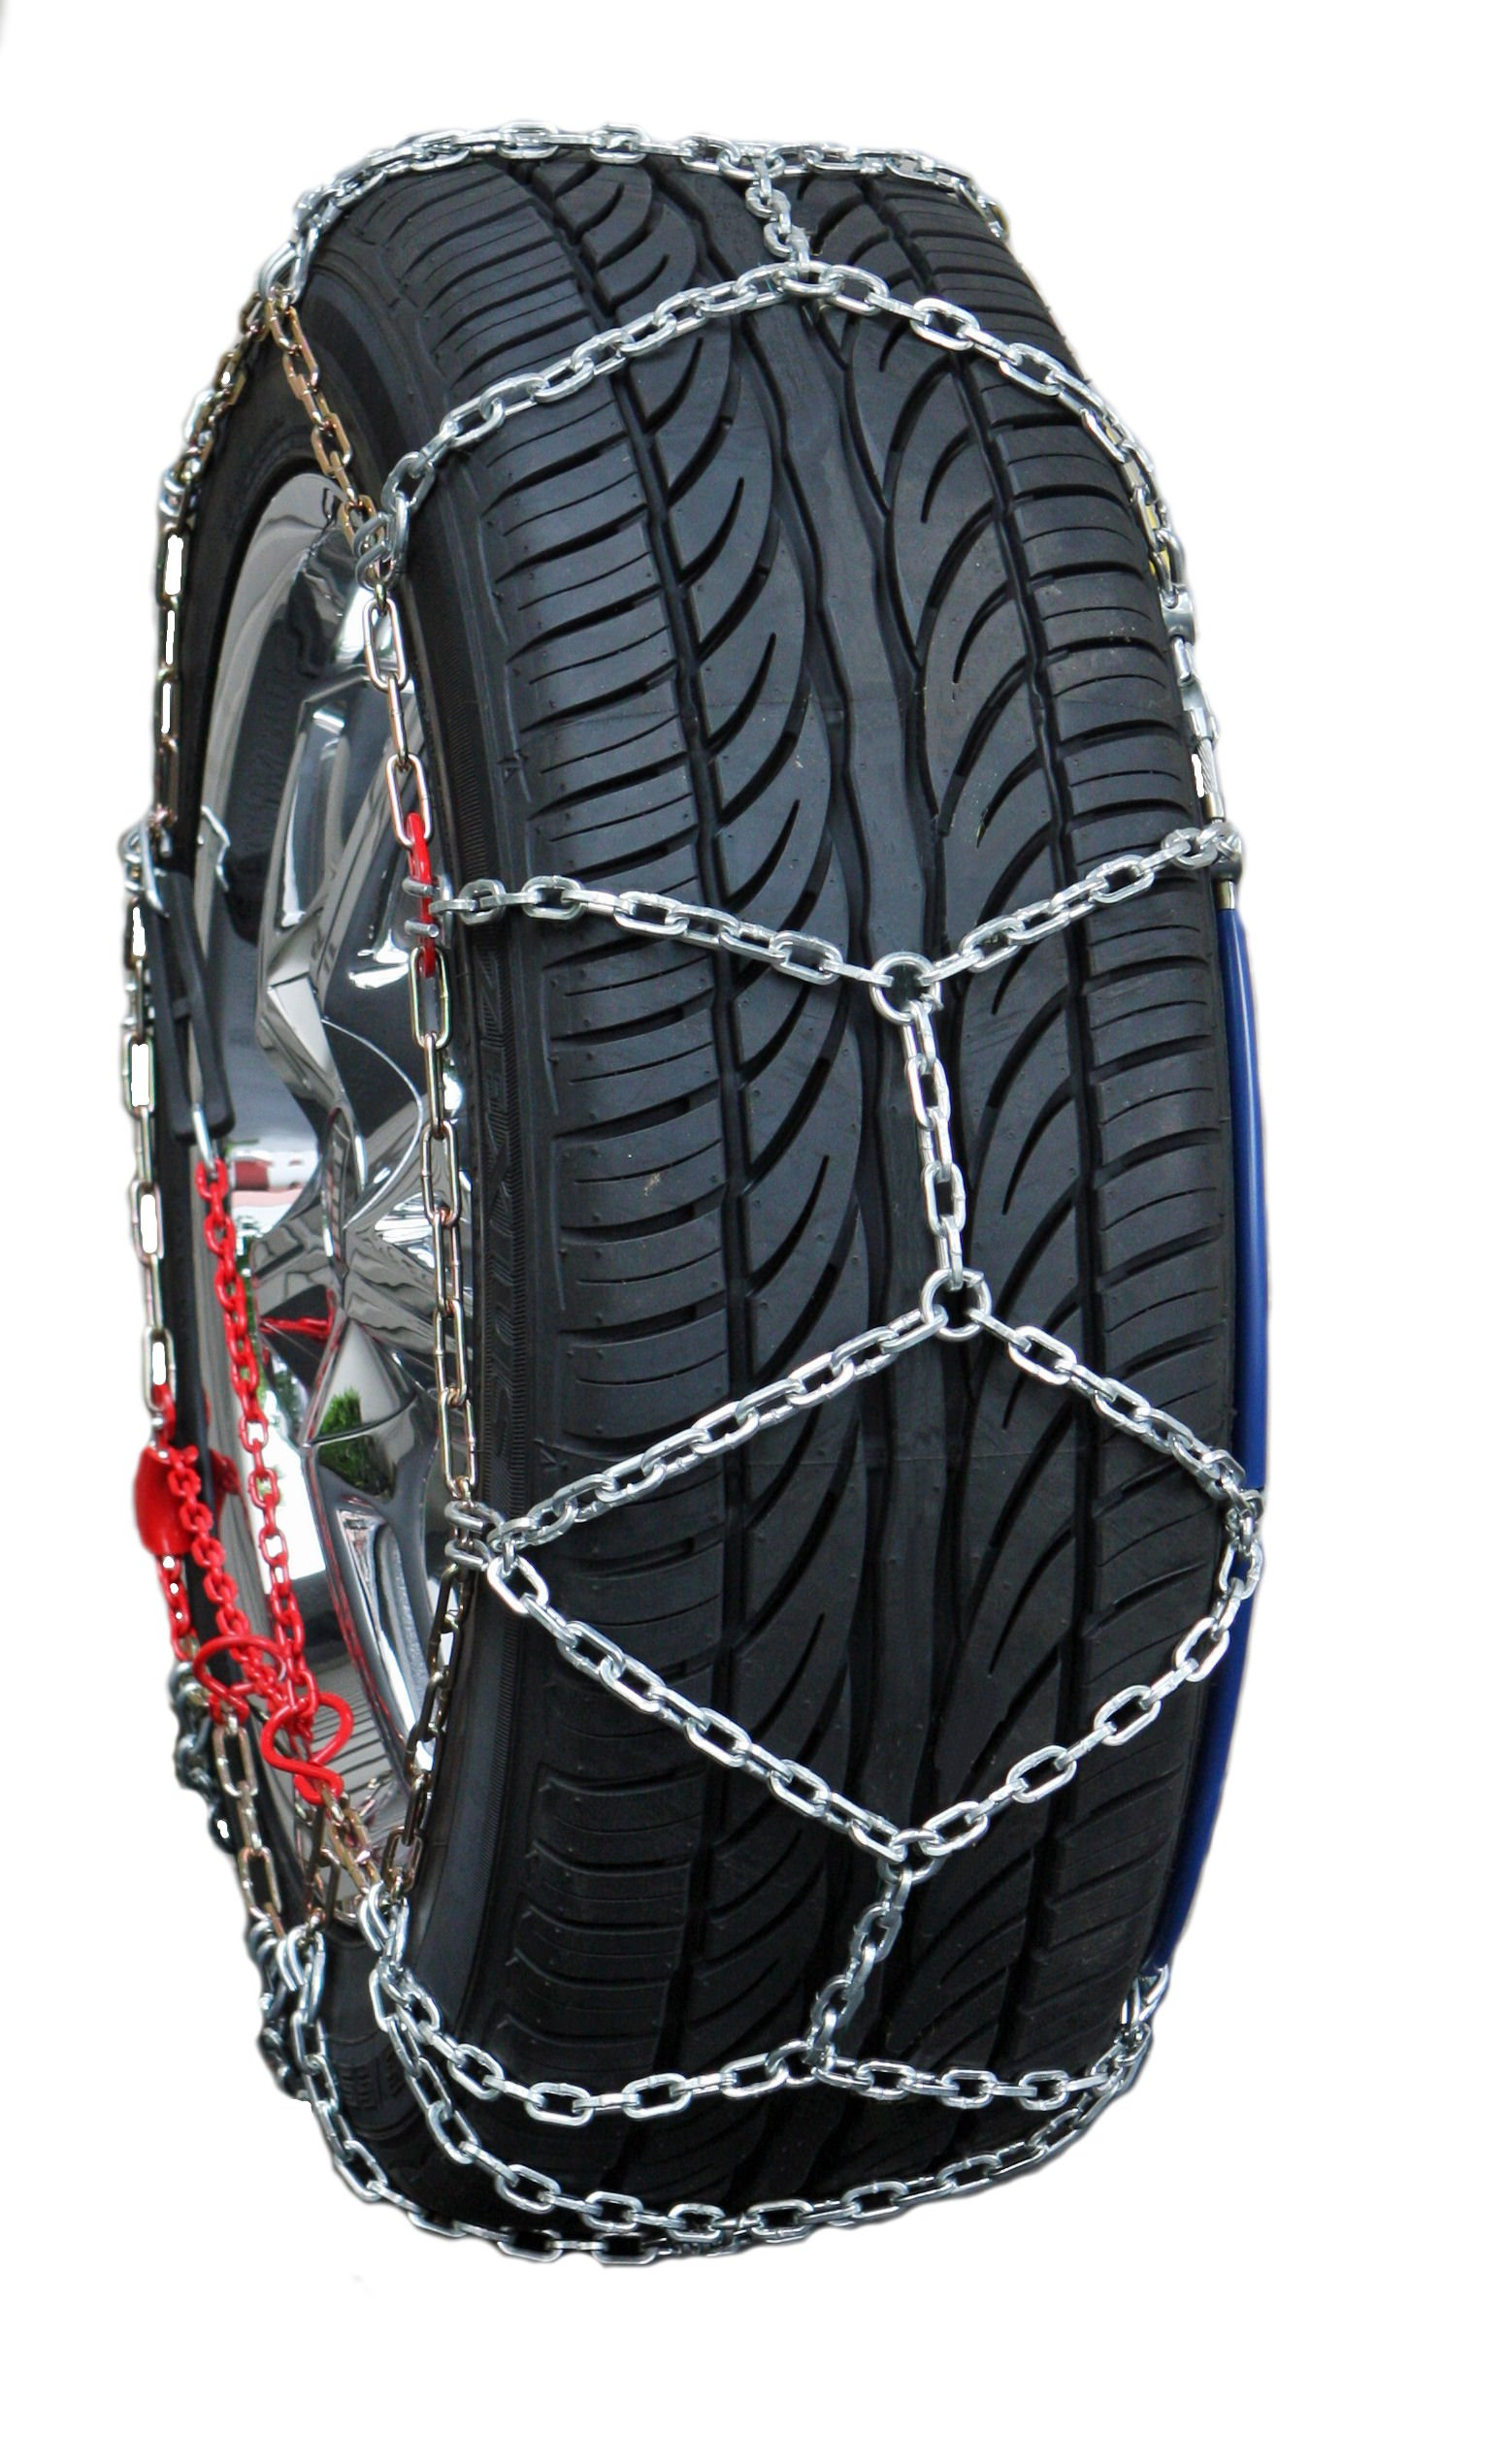 Laclede Chain 7022-317-07 Alpine Sport Light Truck and SUV Tire Chains